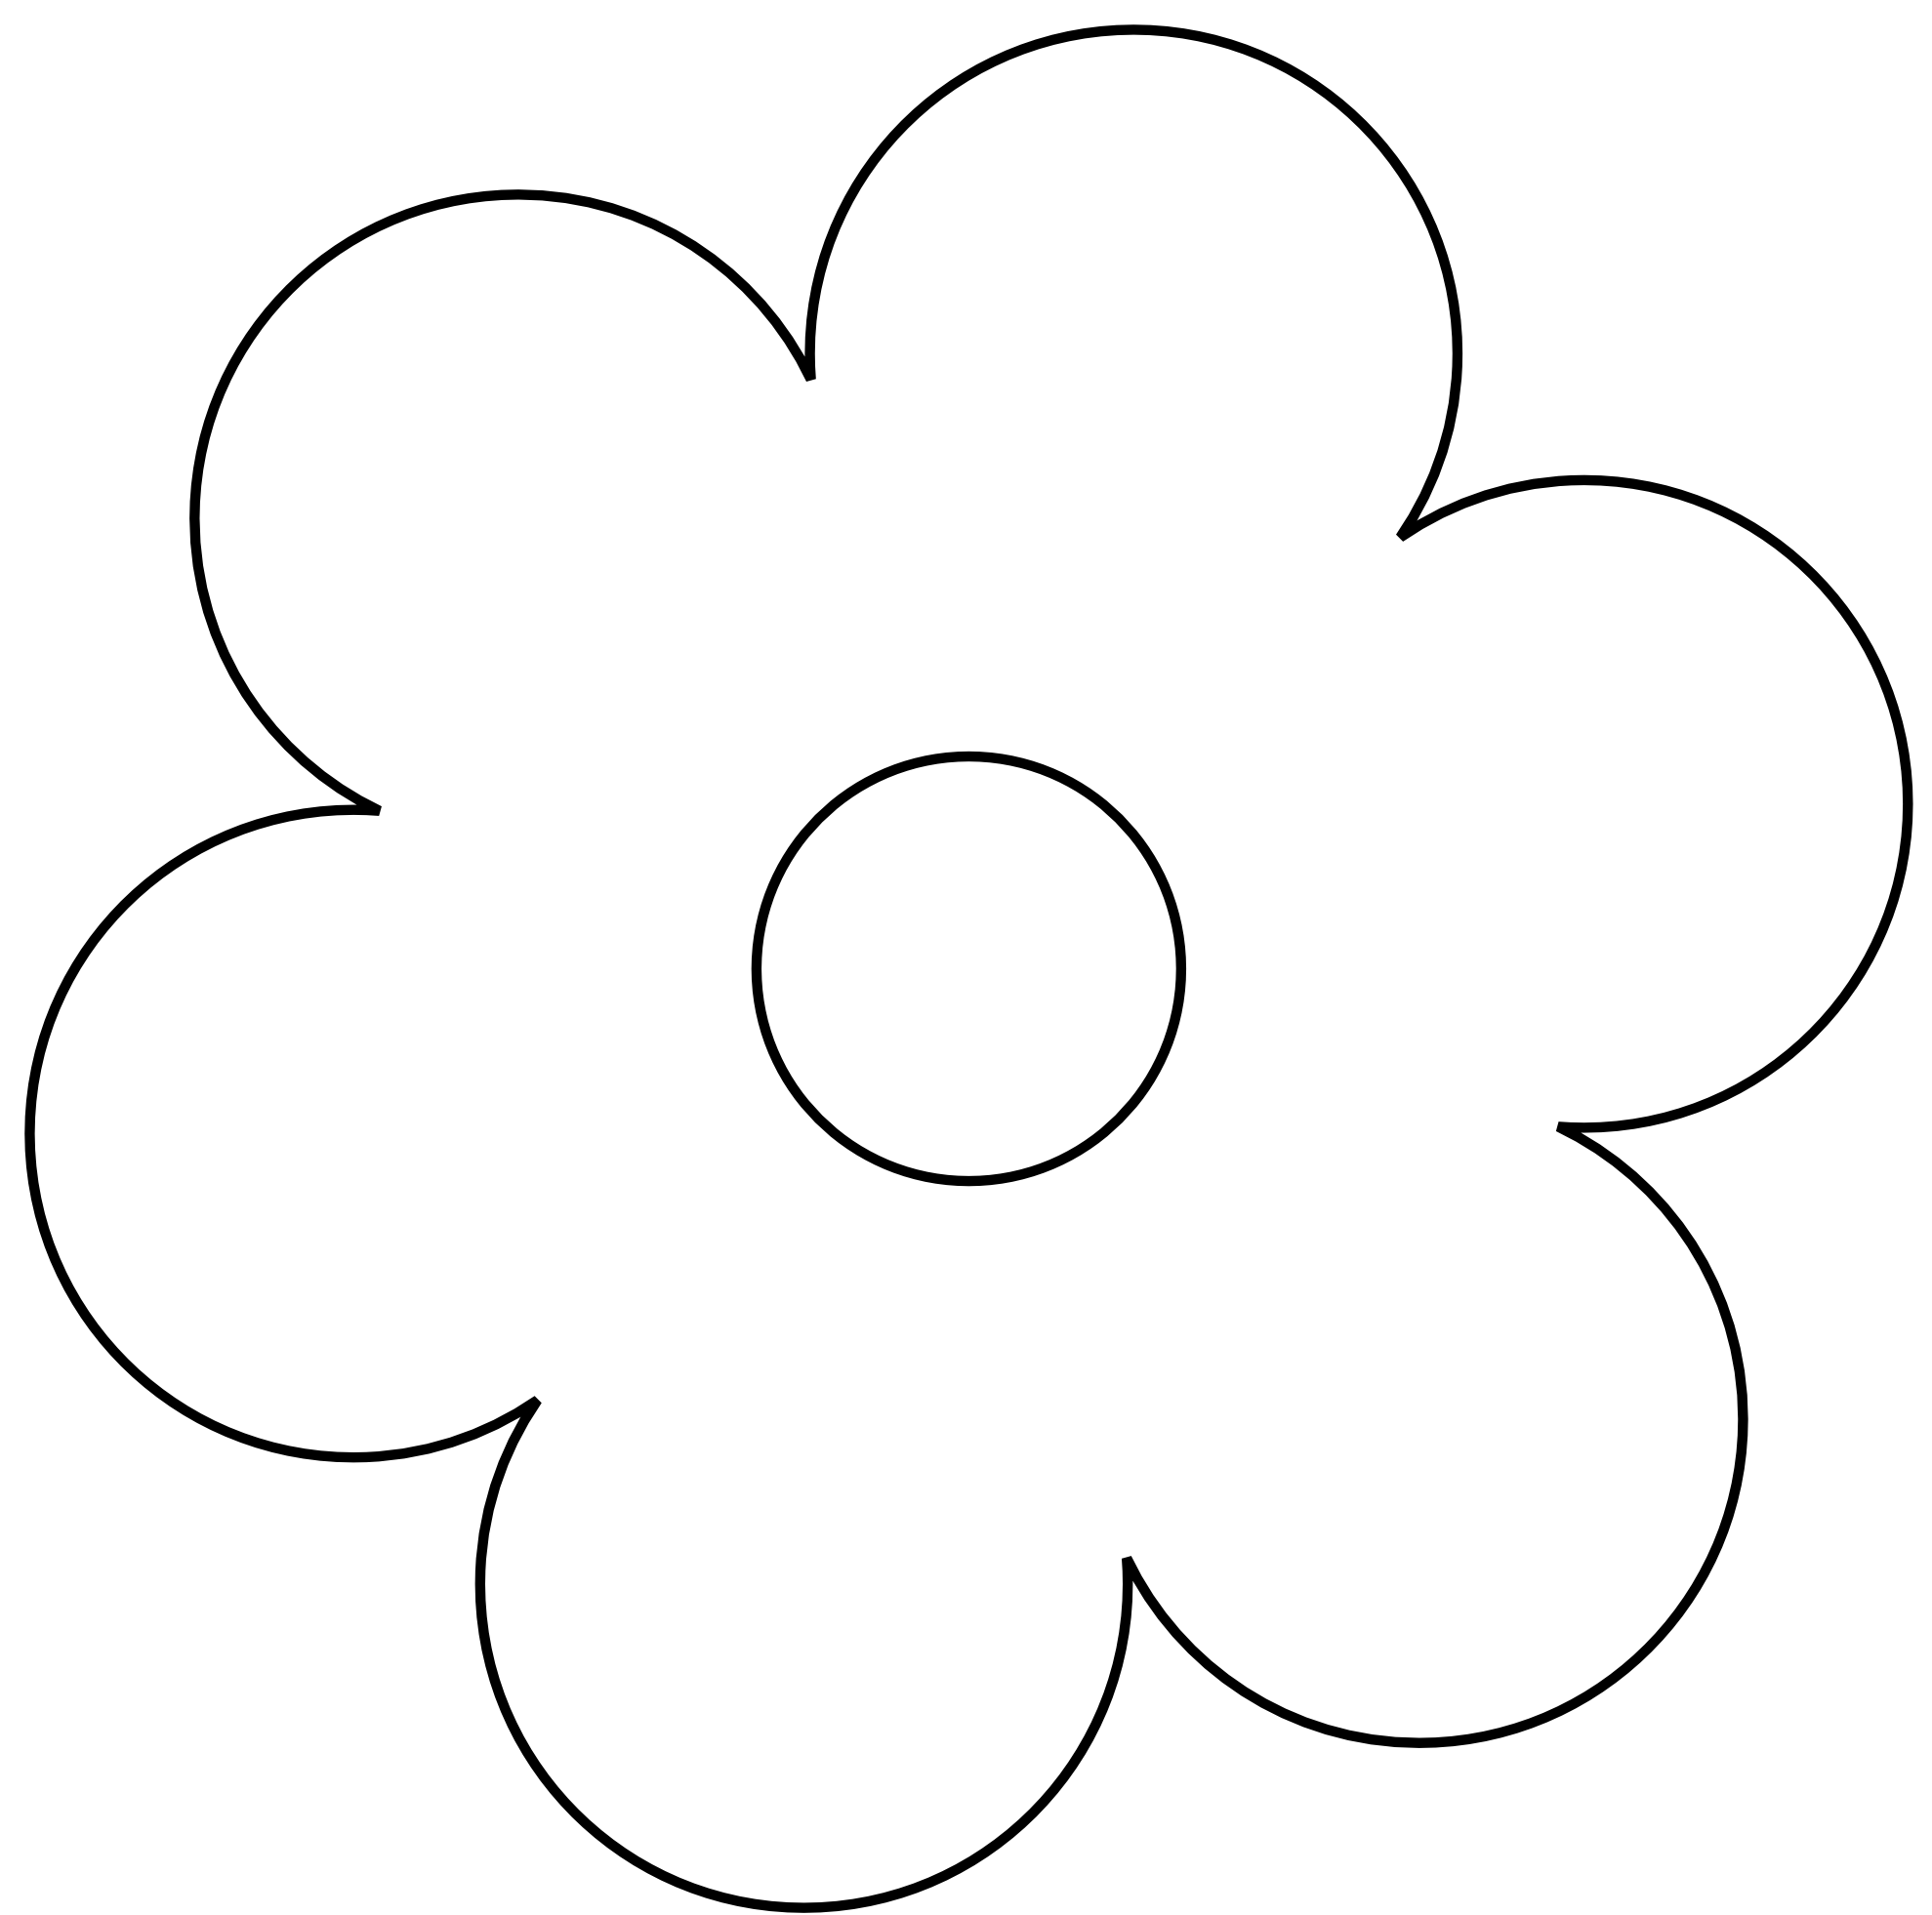 12 graphic black and white spring flower images black white flower flower clip art black white mightylinksfo